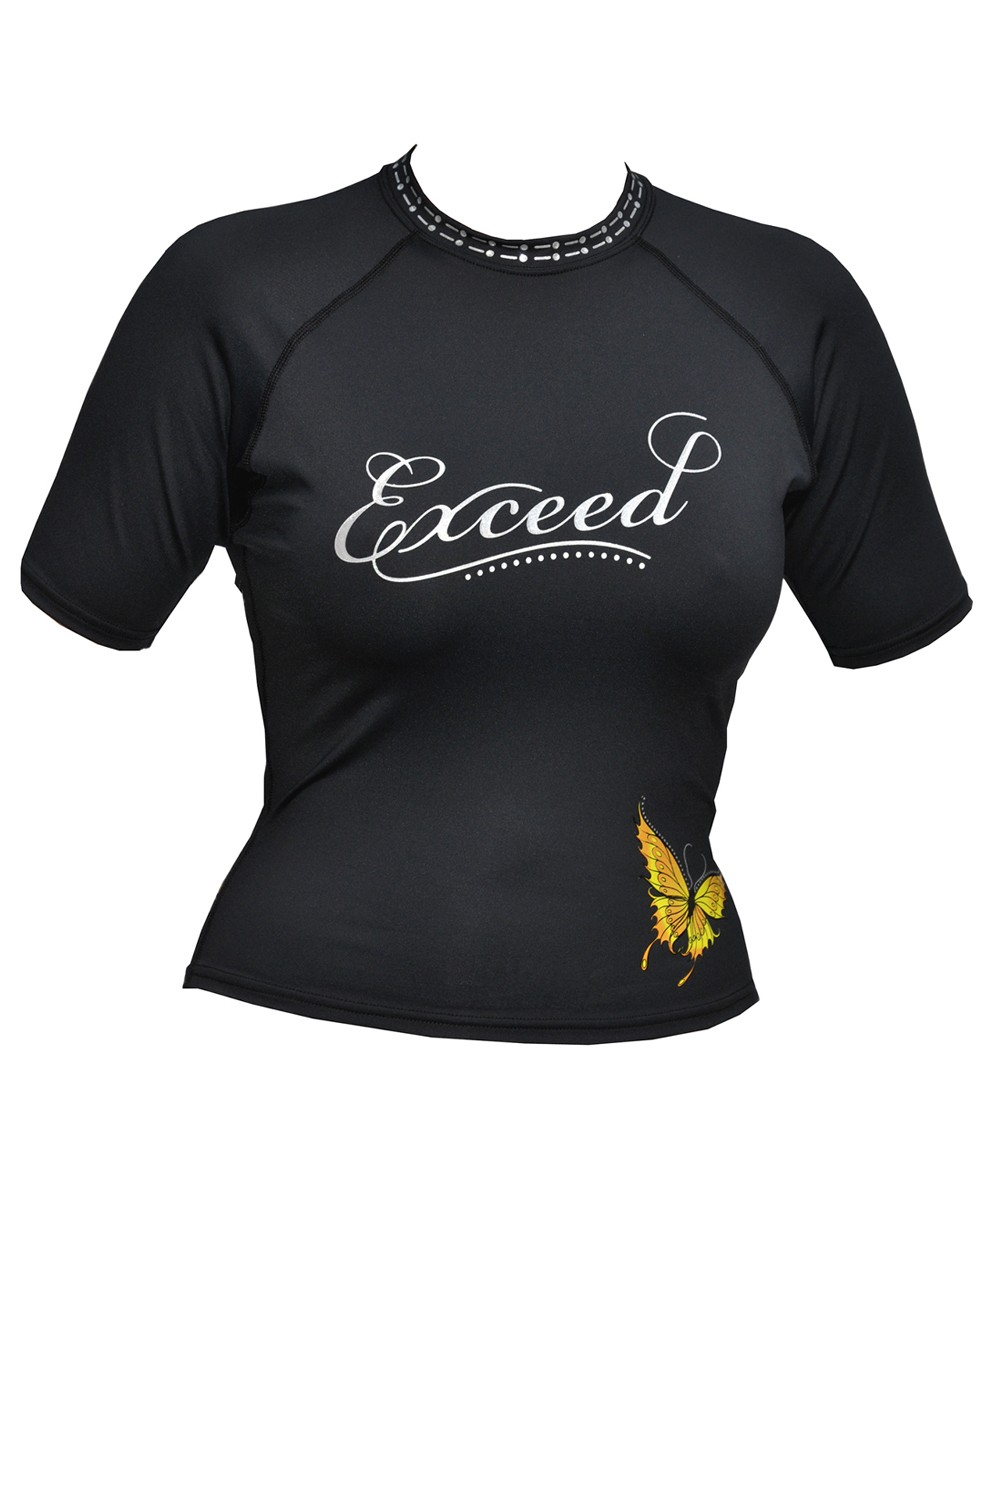 Exceed Encore S/S Womens short sleeve rash guard